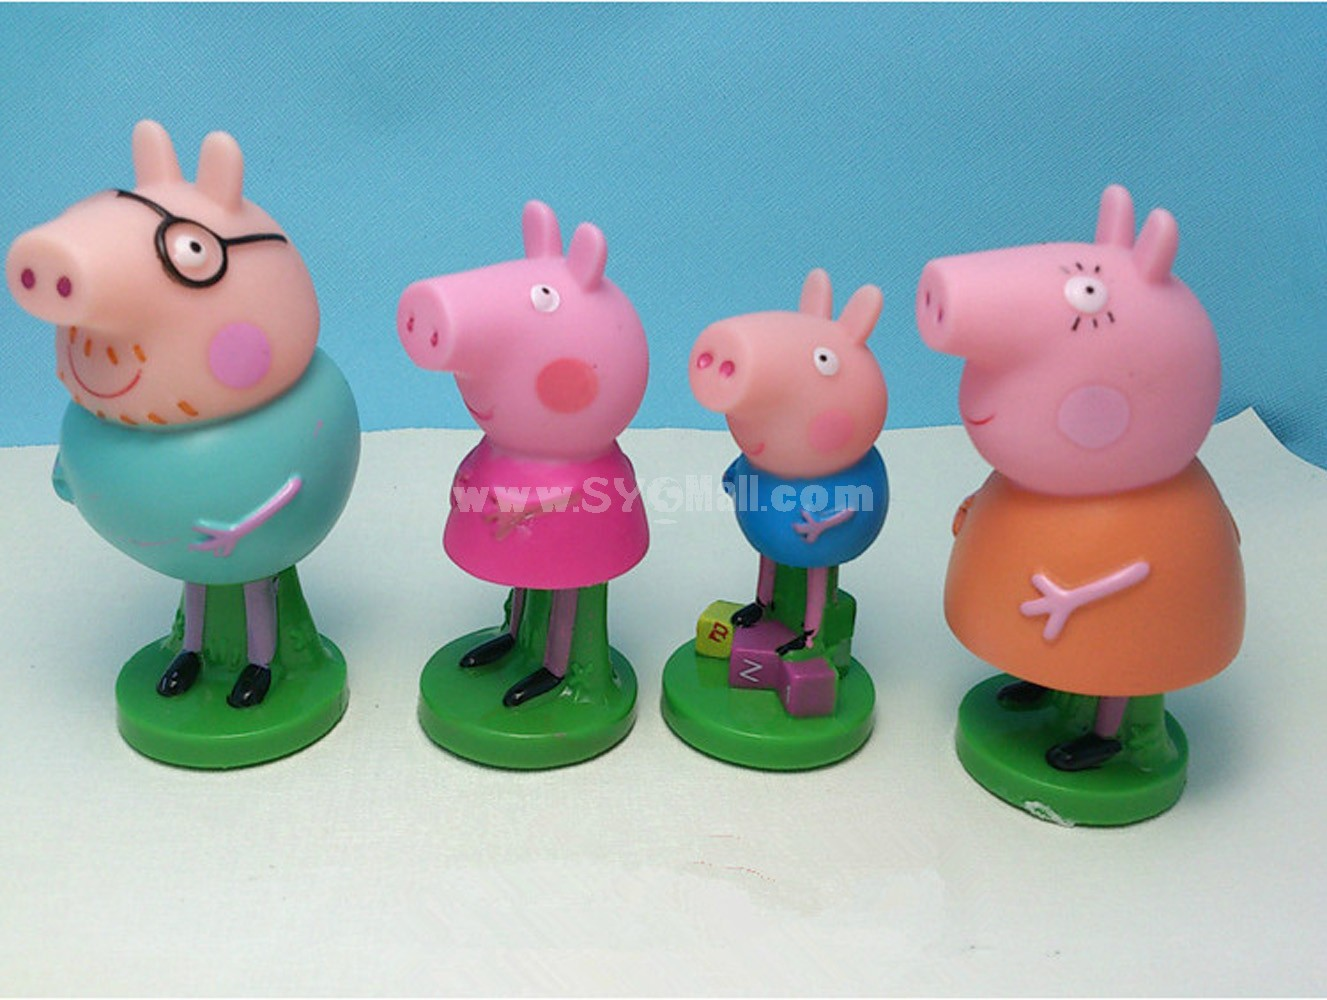 Peppa Pig Figures Toys Vinyl Toys with Standing Board 4pcs/Lot 3.0-3.7inch